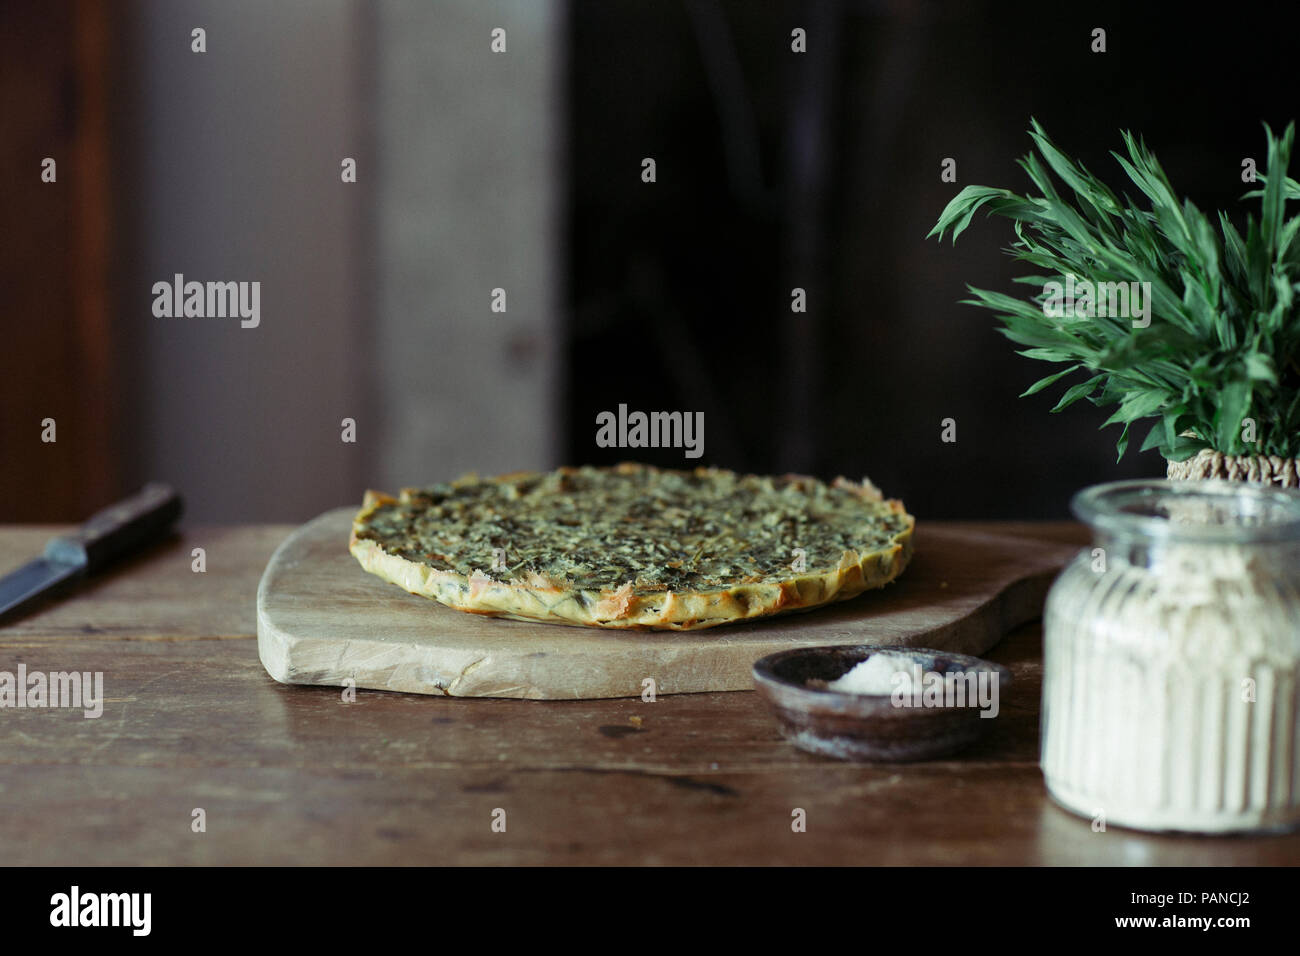 Homemade chickpea and herb cake on wooden table - Stock Image